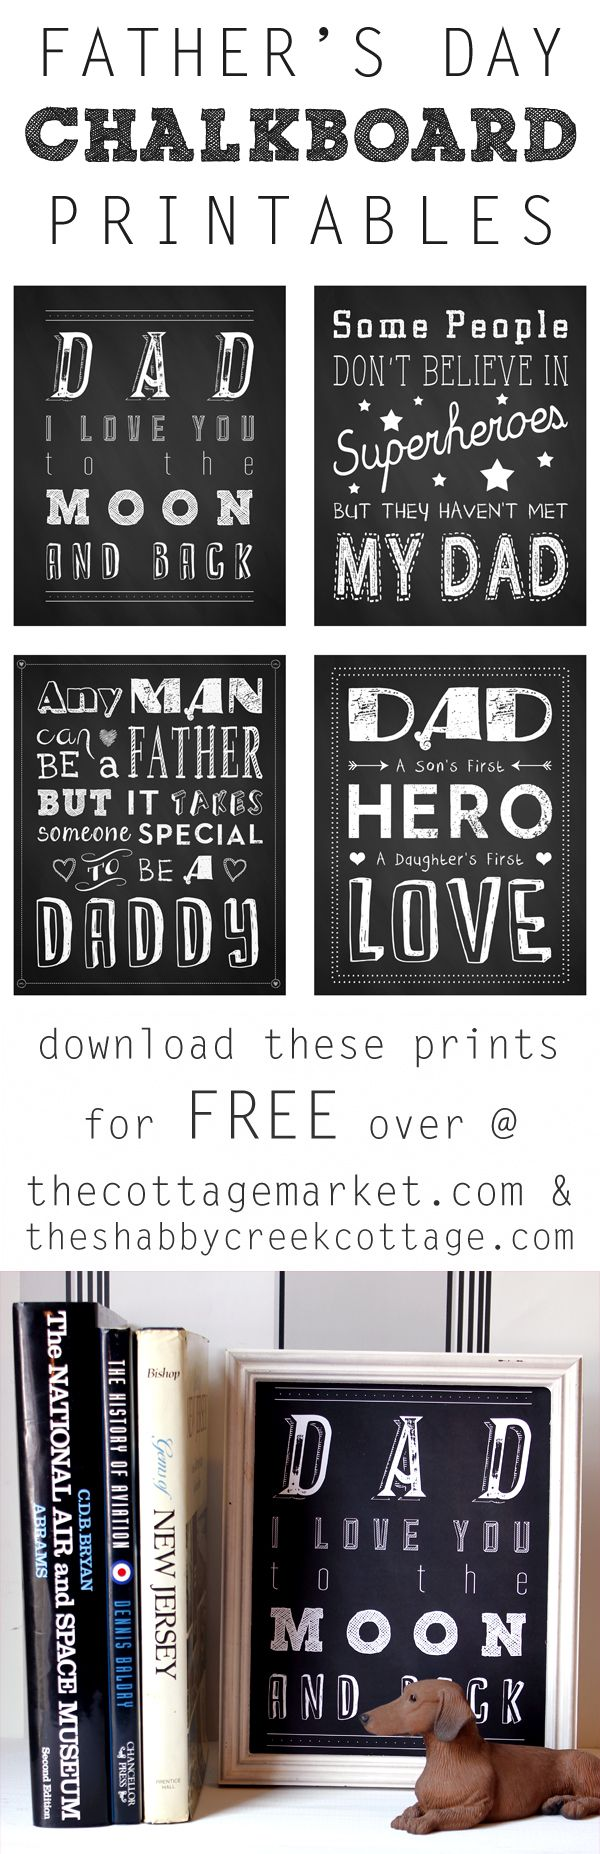 Father's Day Chalkboard Printables...